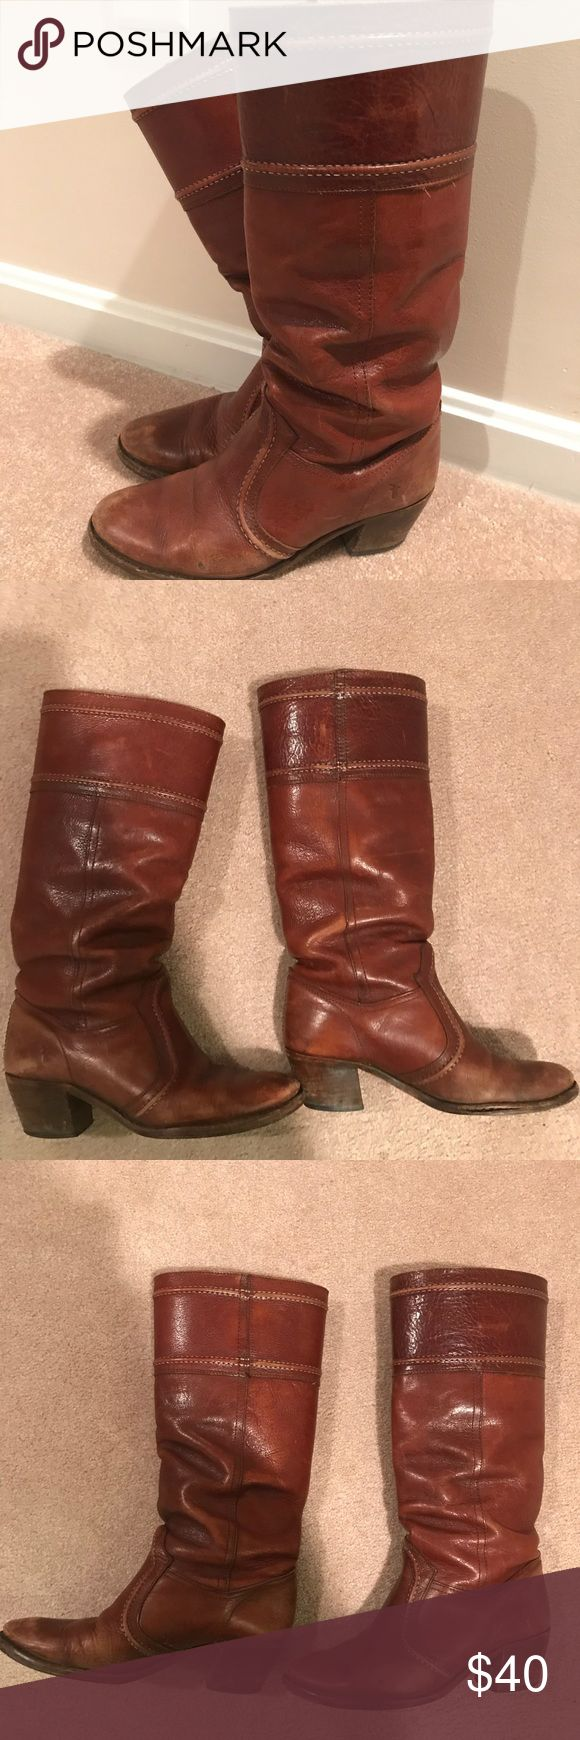 Frye Jane Boots Worn and loved authentic Jane Frye boots. Have had for years. Price reflects this! When wearing though the wear is not super evident. Cute with jeans and sweaters or dresses! Frye Shoes Heeled Boots